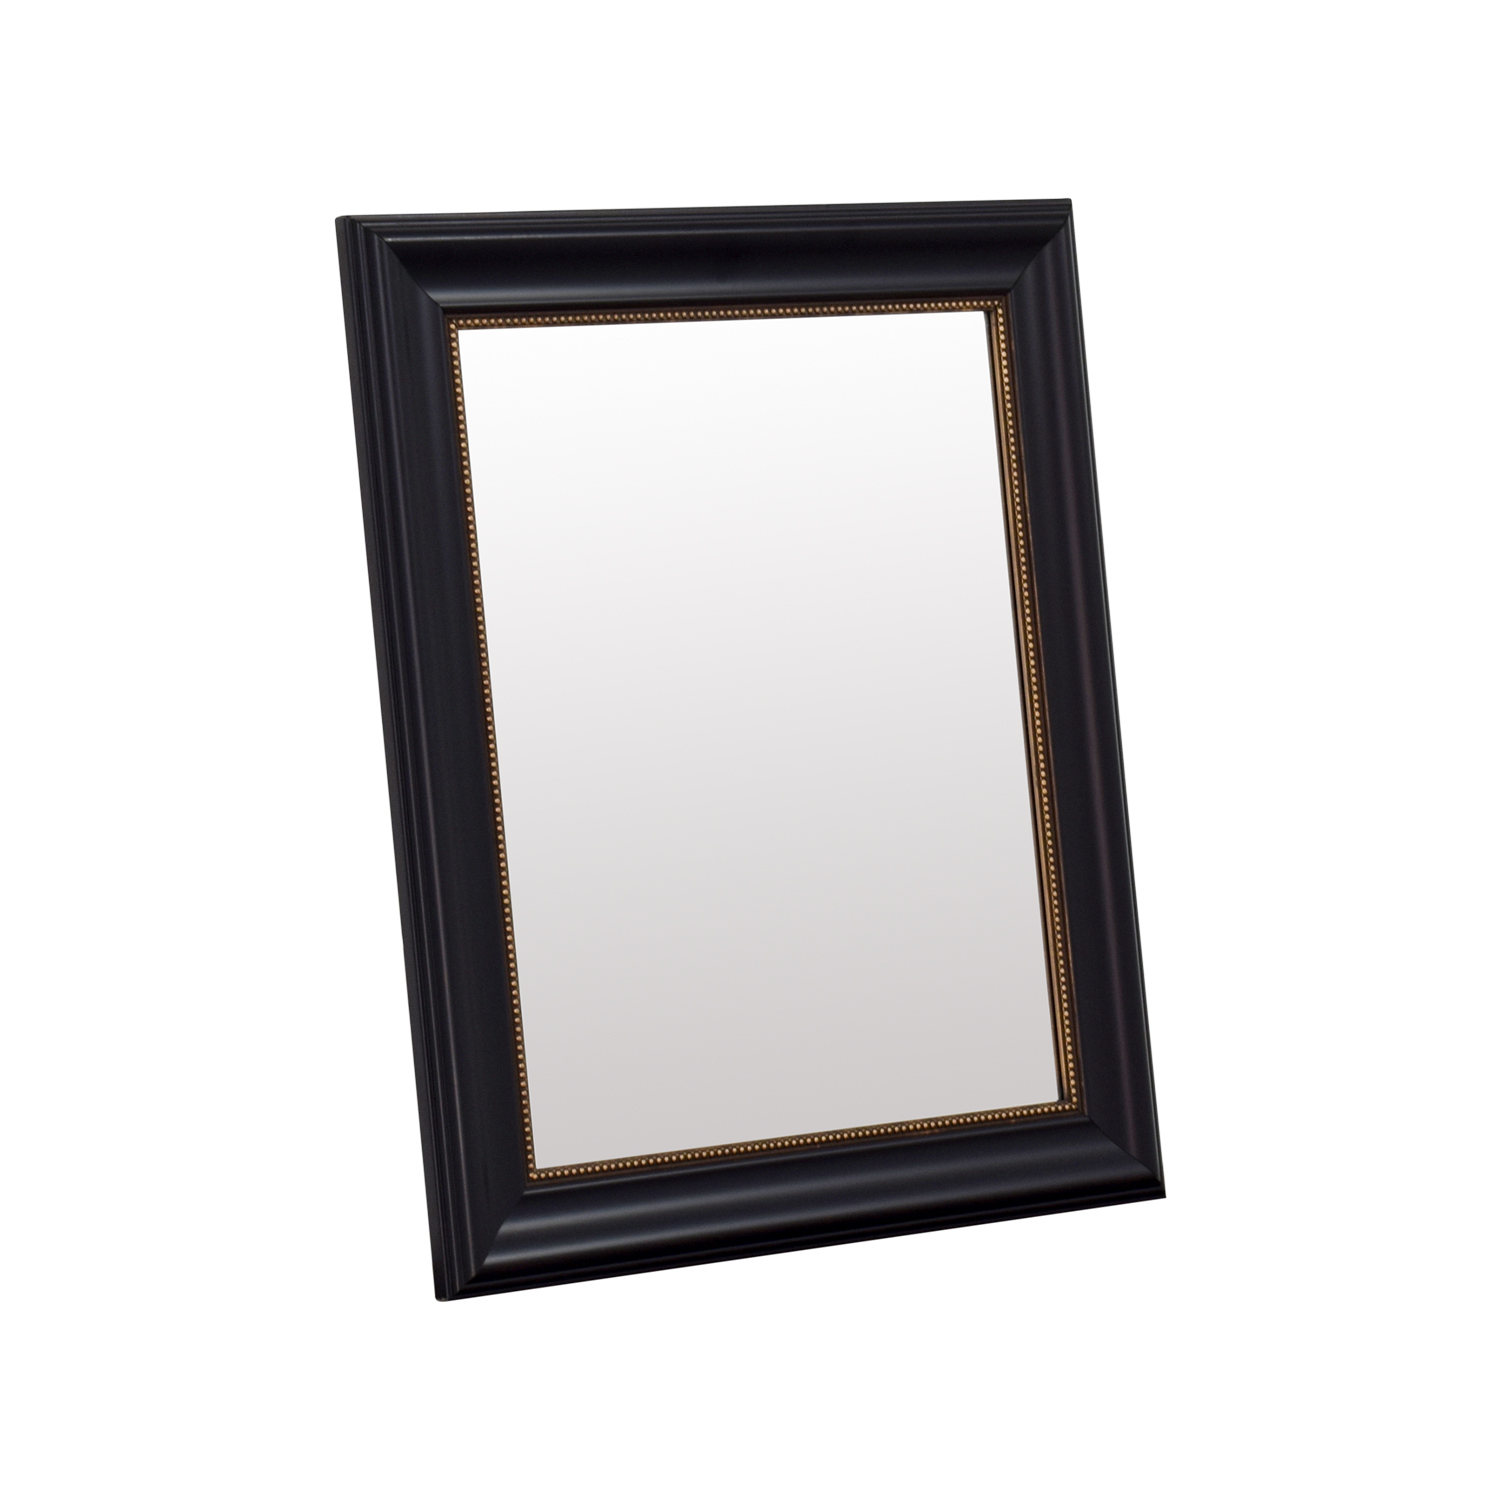 60 Off Homegoods Homegoods Black And Gold Beveled Mirror Decor